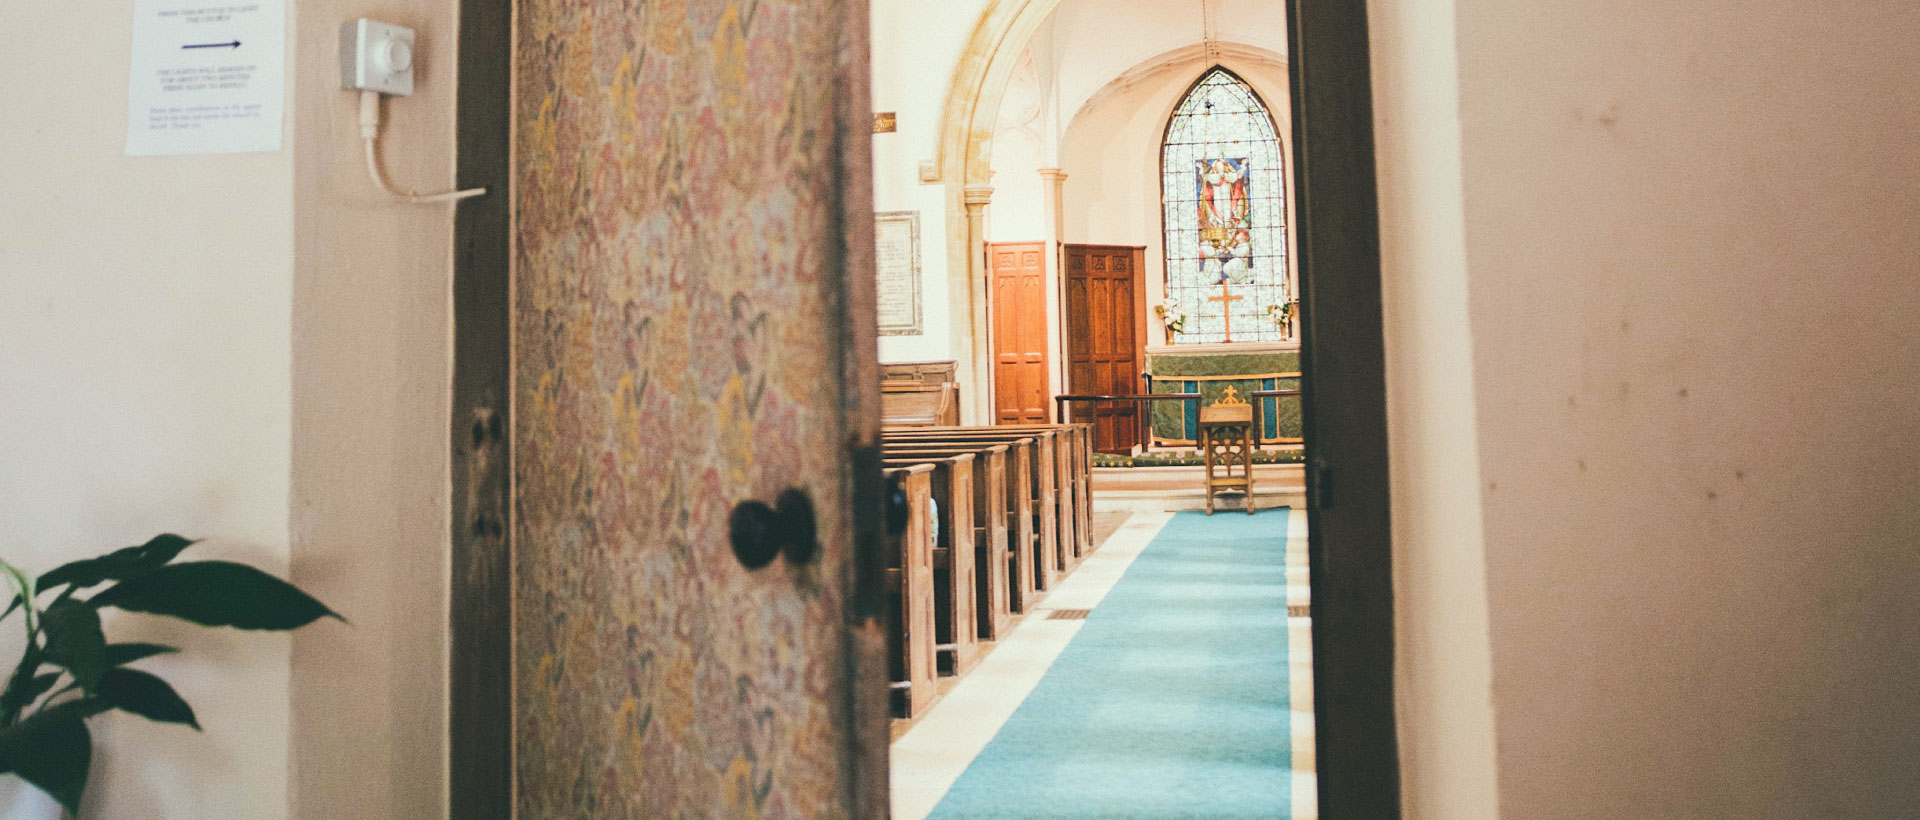 The Church Is a Mess  The Church Is a Beauty